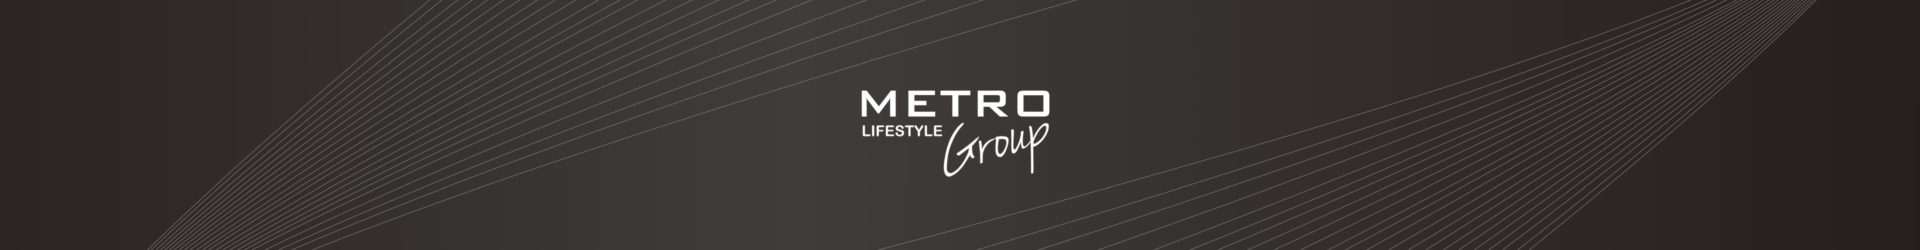 Metropolitan Lifestyle Group